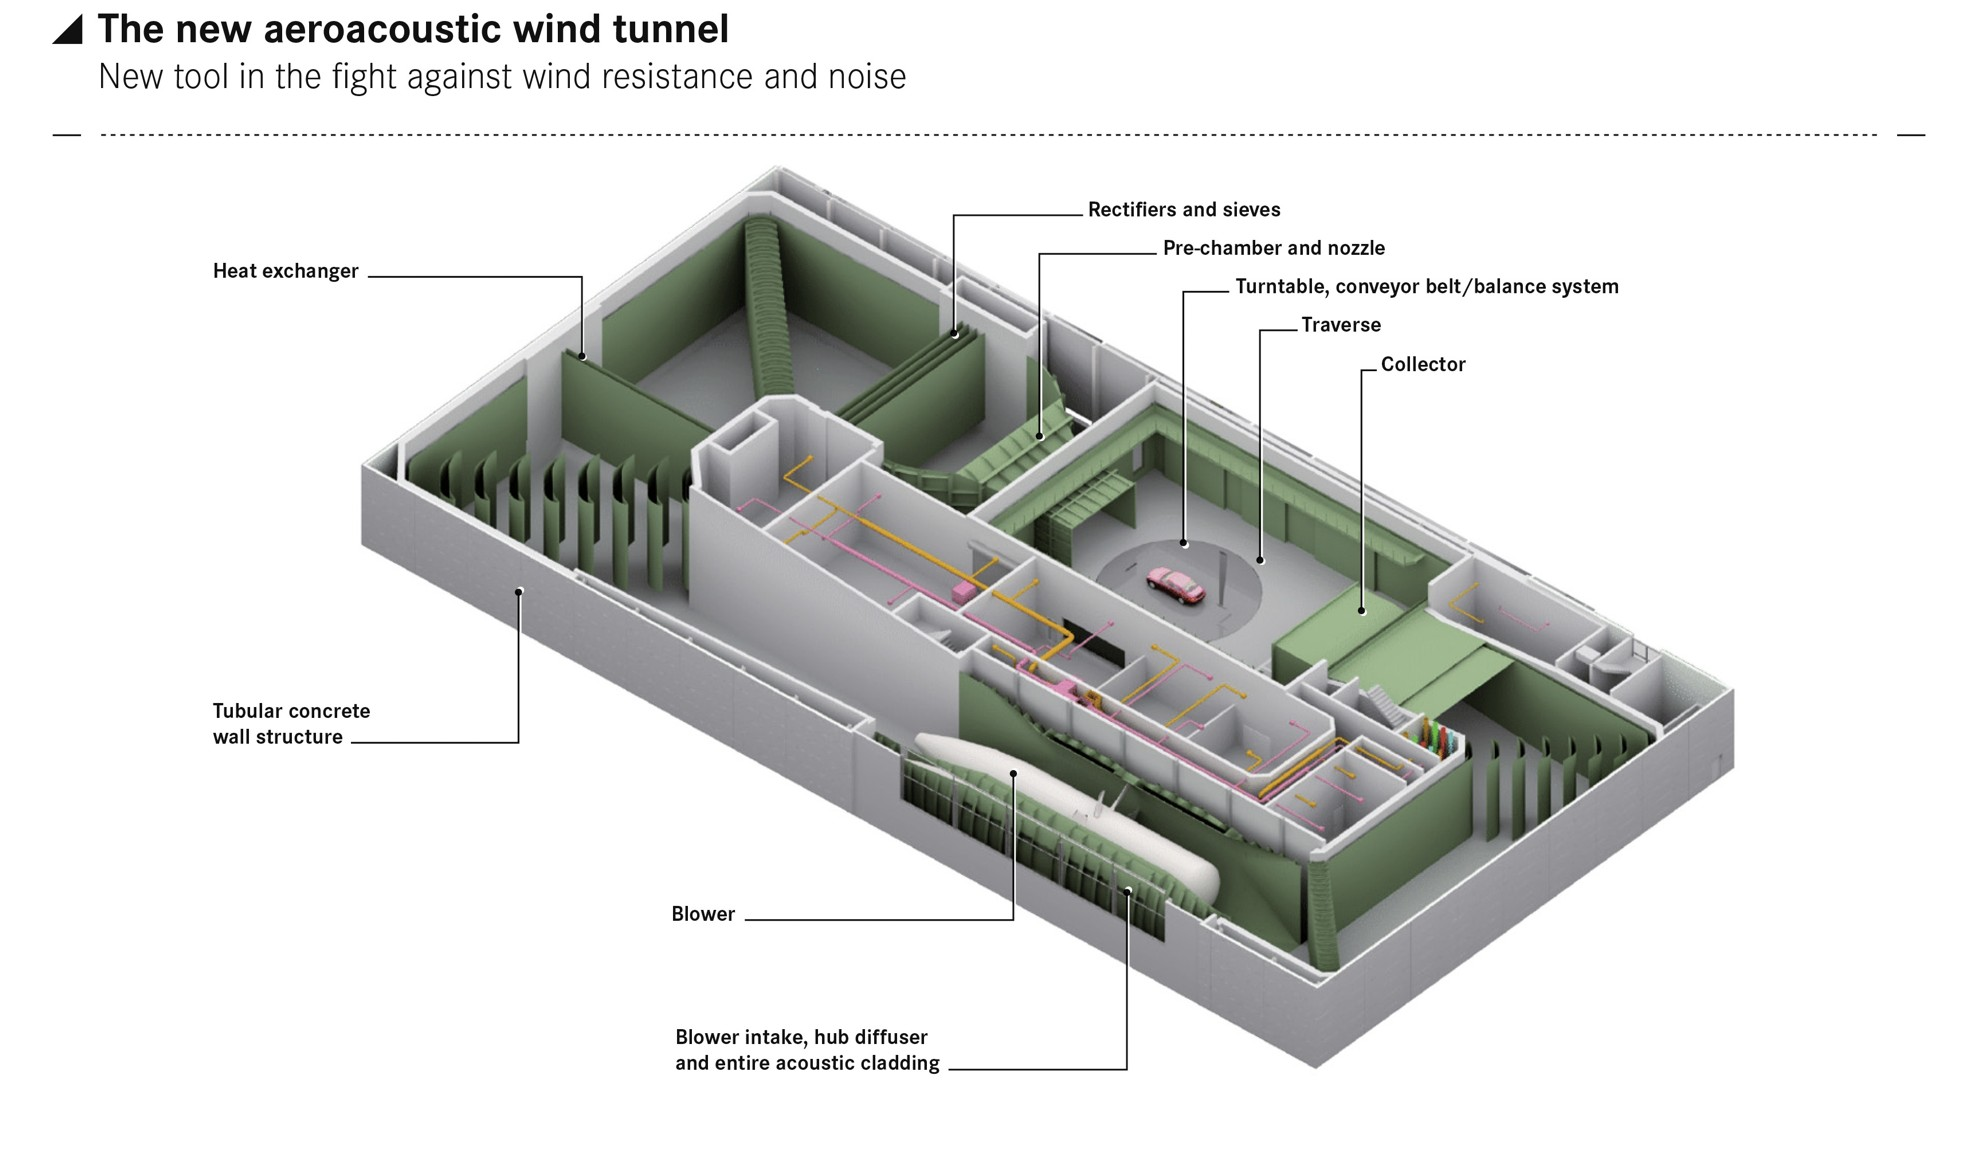 The new aeroacoustic wind tunnel new tool in the battle against wind